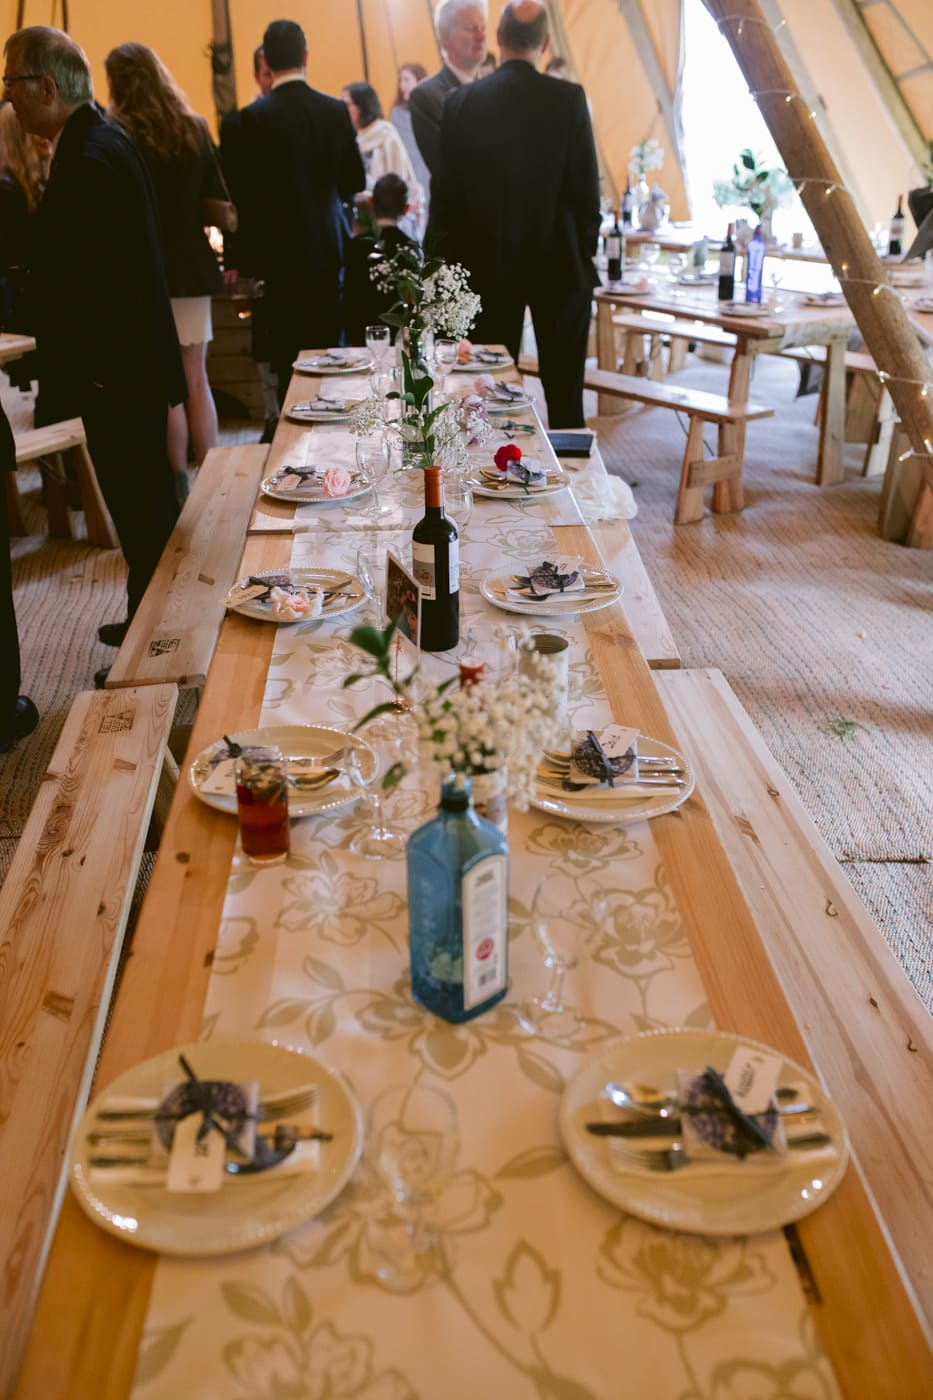 Table Decorated with Bottles and Place mats